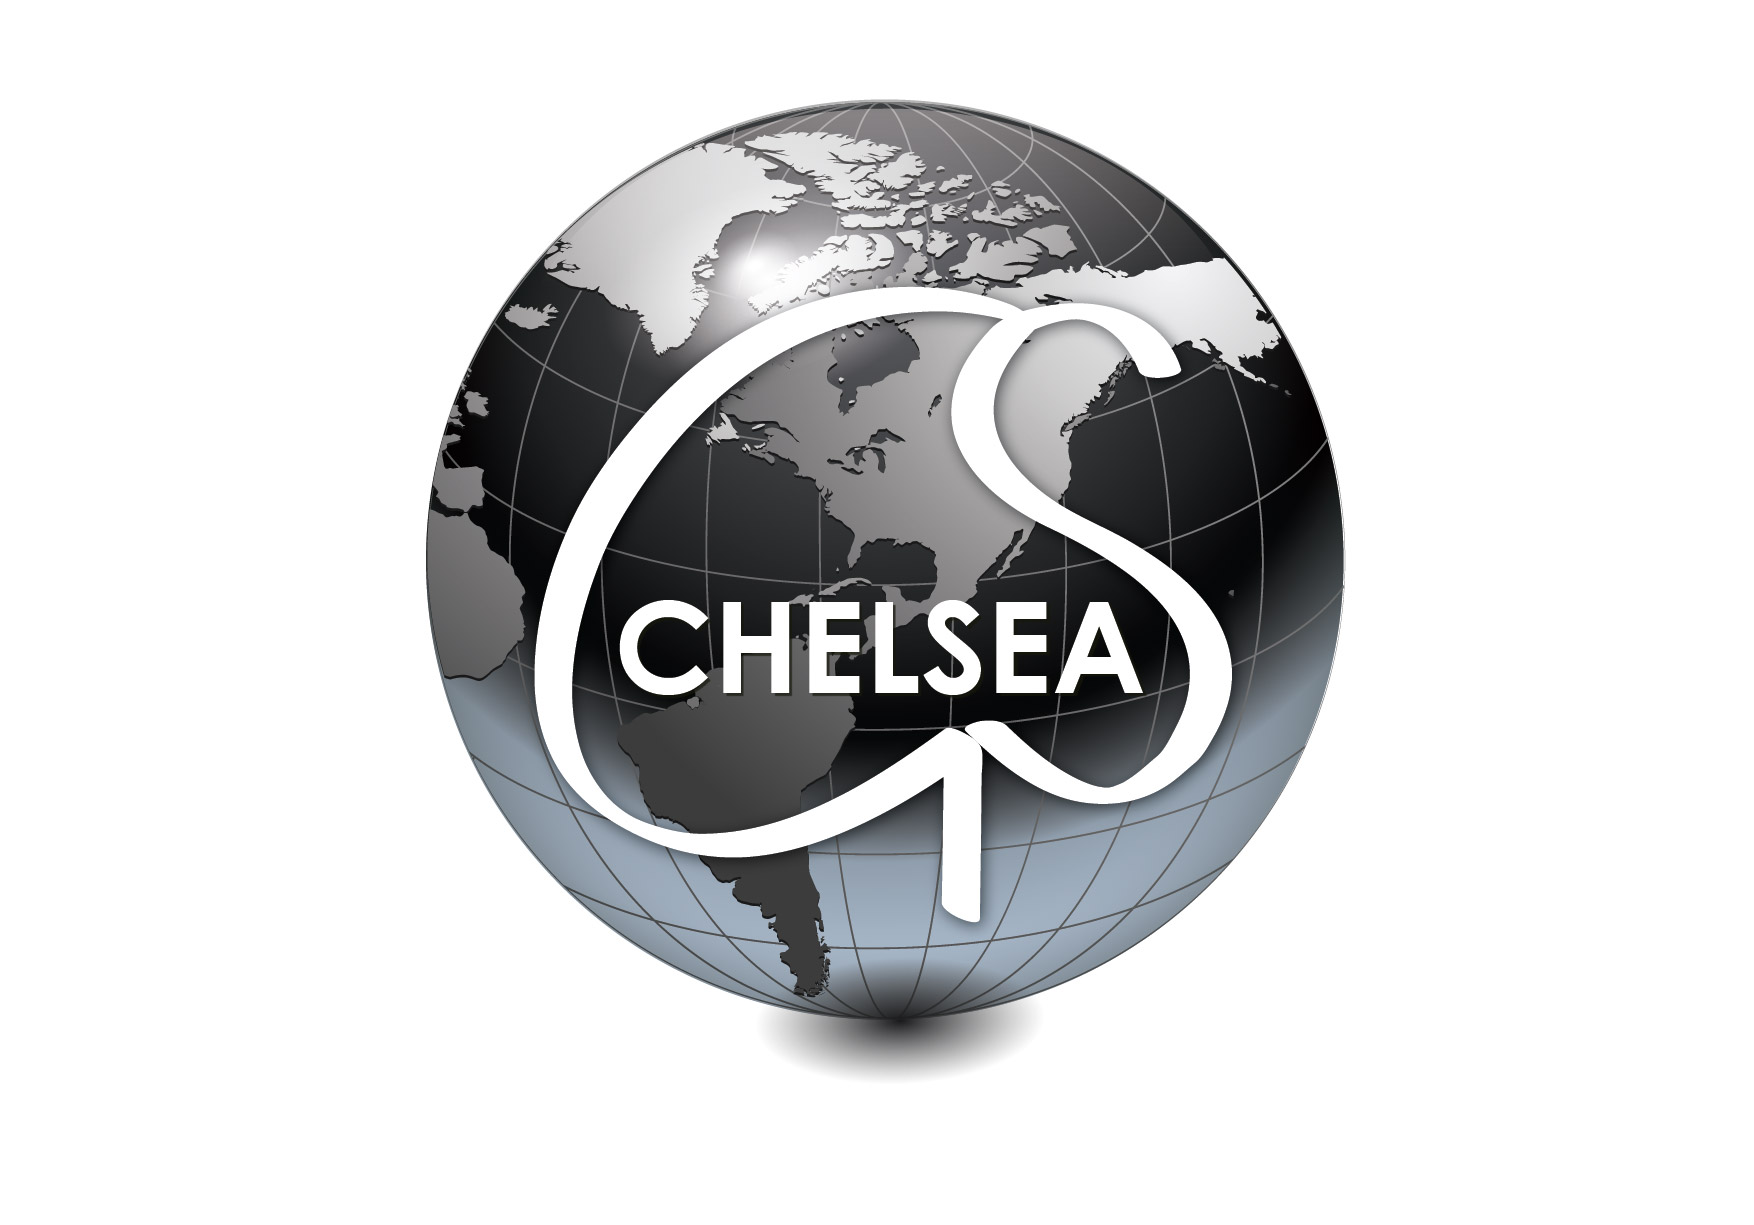 Chelsea GS - Advertising Agency